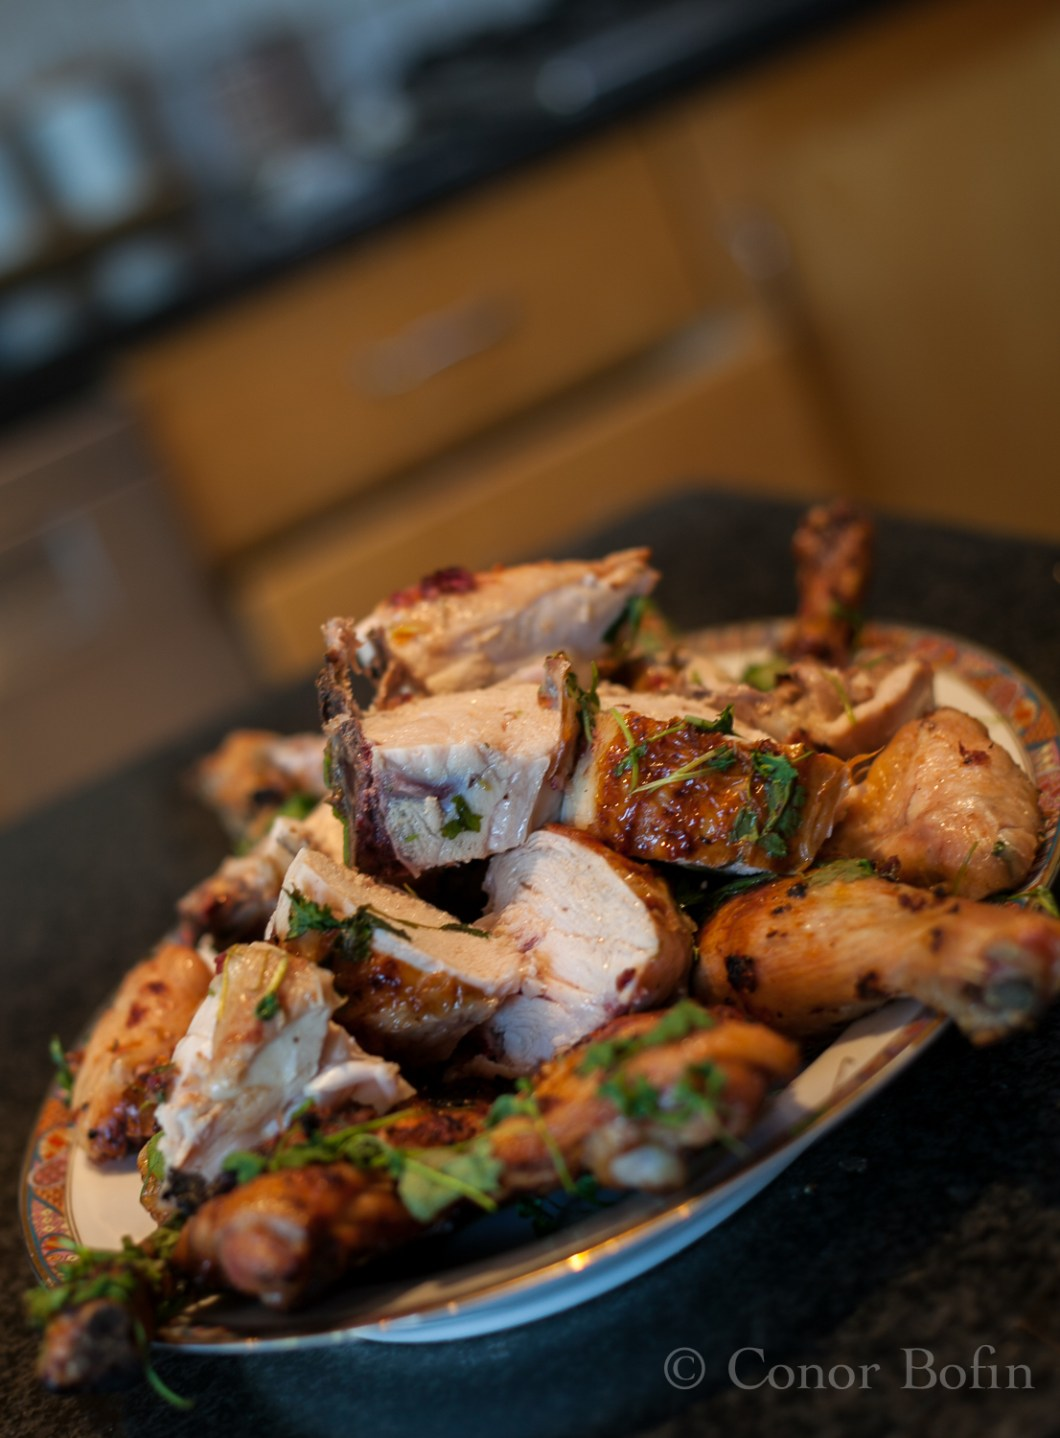 Truly delicious chicken pieces, infused with the flavours of lime and coriander.